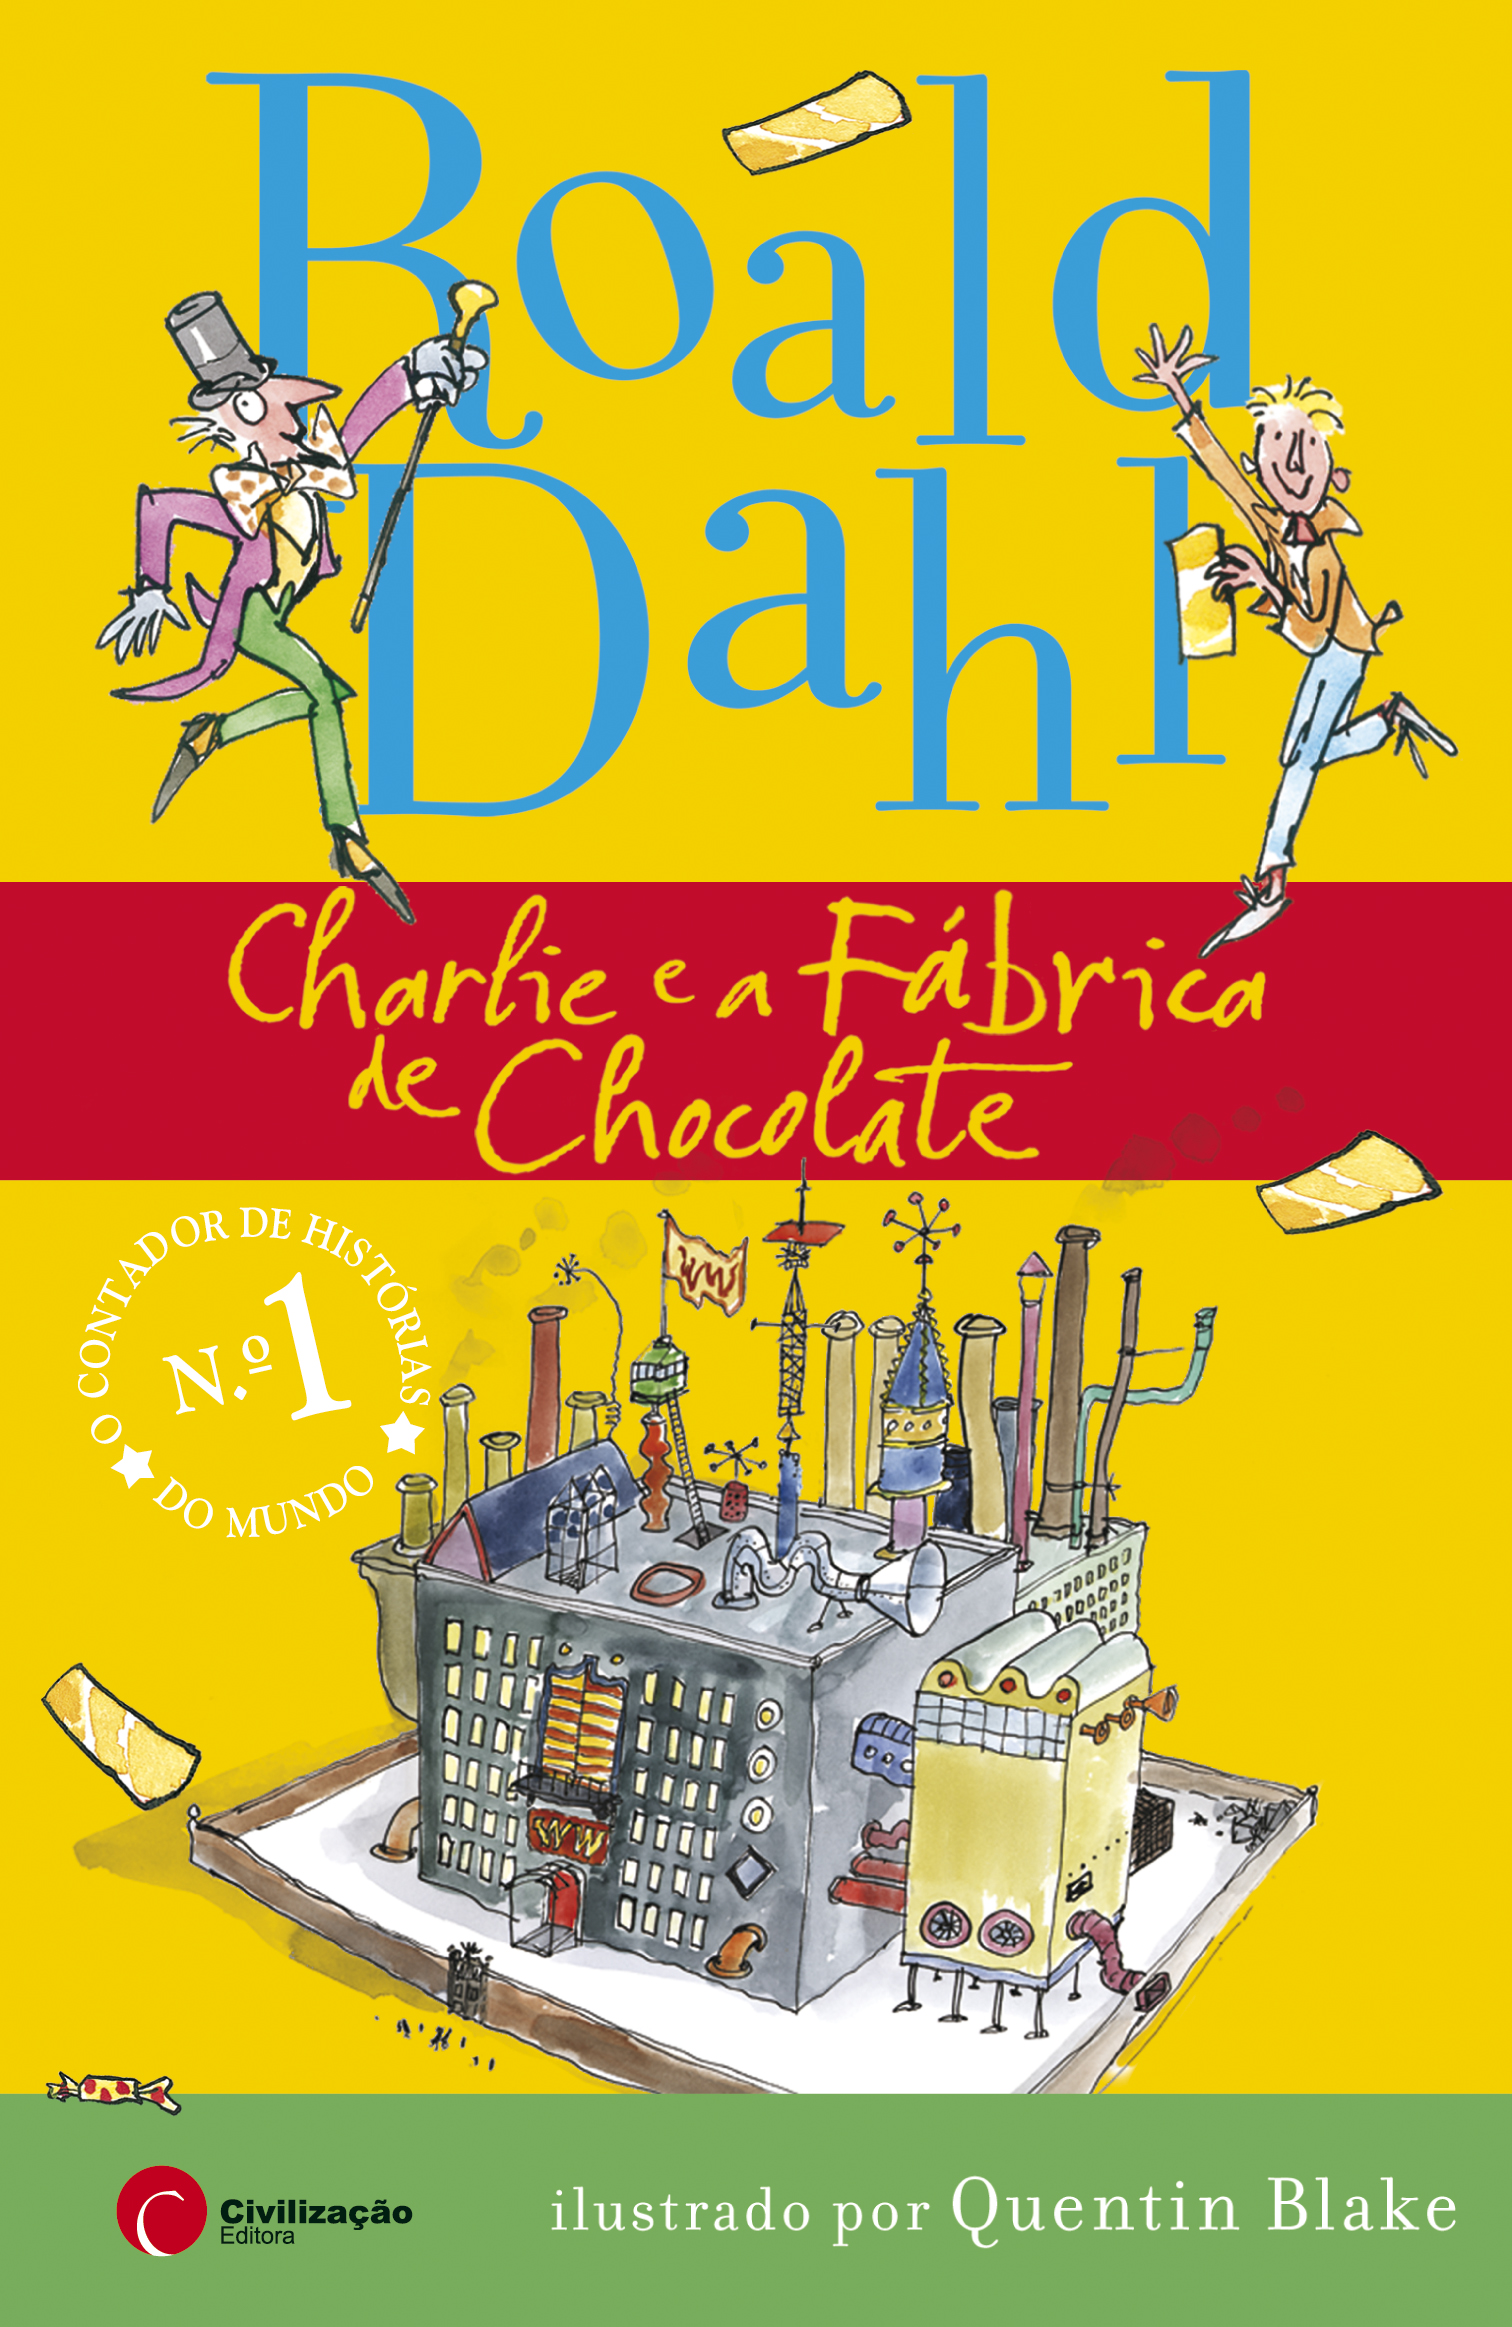 https://criacria.files.wordpress.com/2011/09/capa-charlie-e-a-fabrica-de-chocolate.jpg